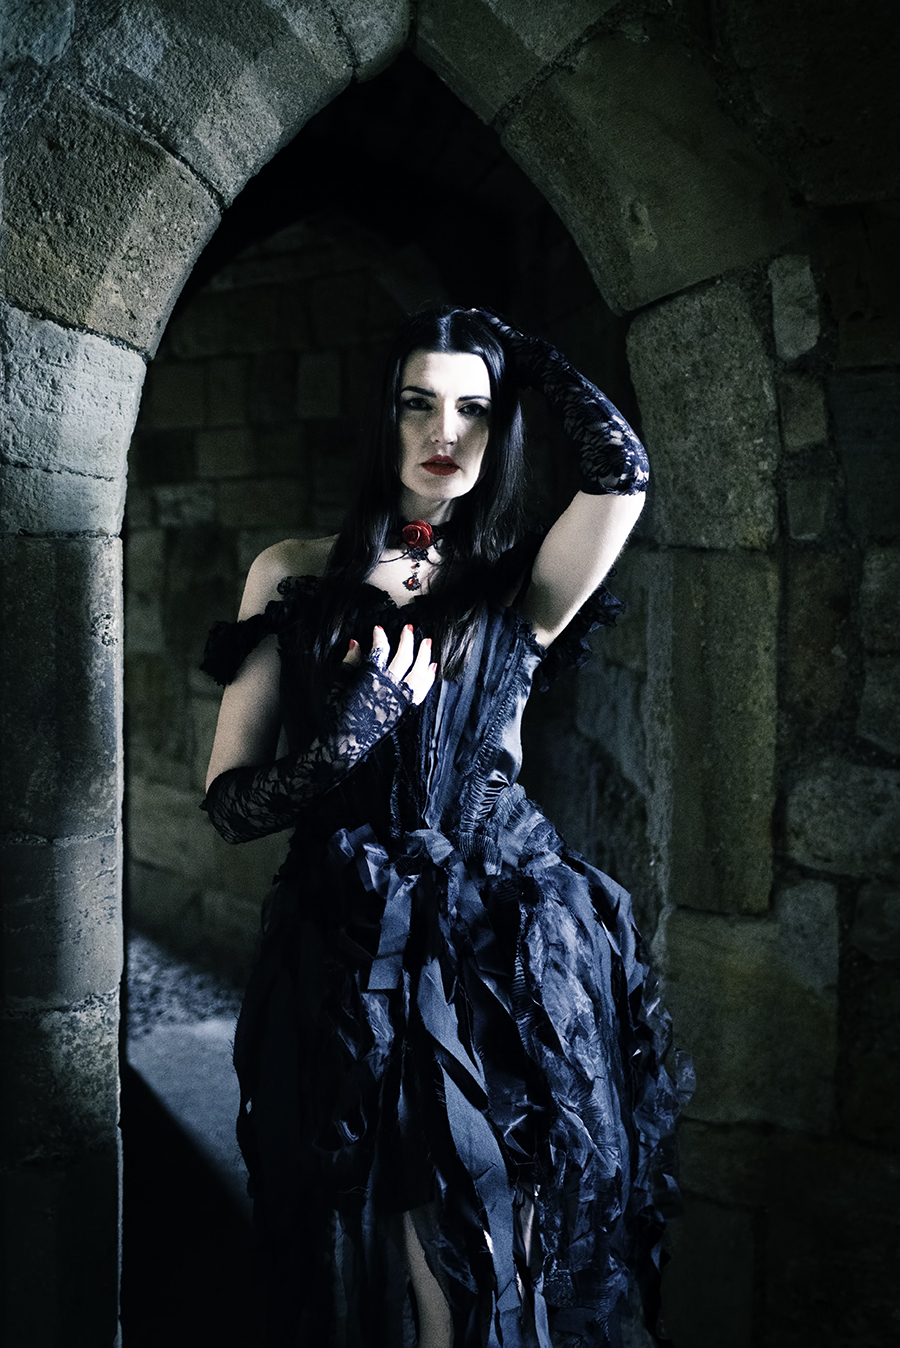 Gothic princess / Photography by AndyL / Uploaded 10th October 2017 @ 08:04 PM